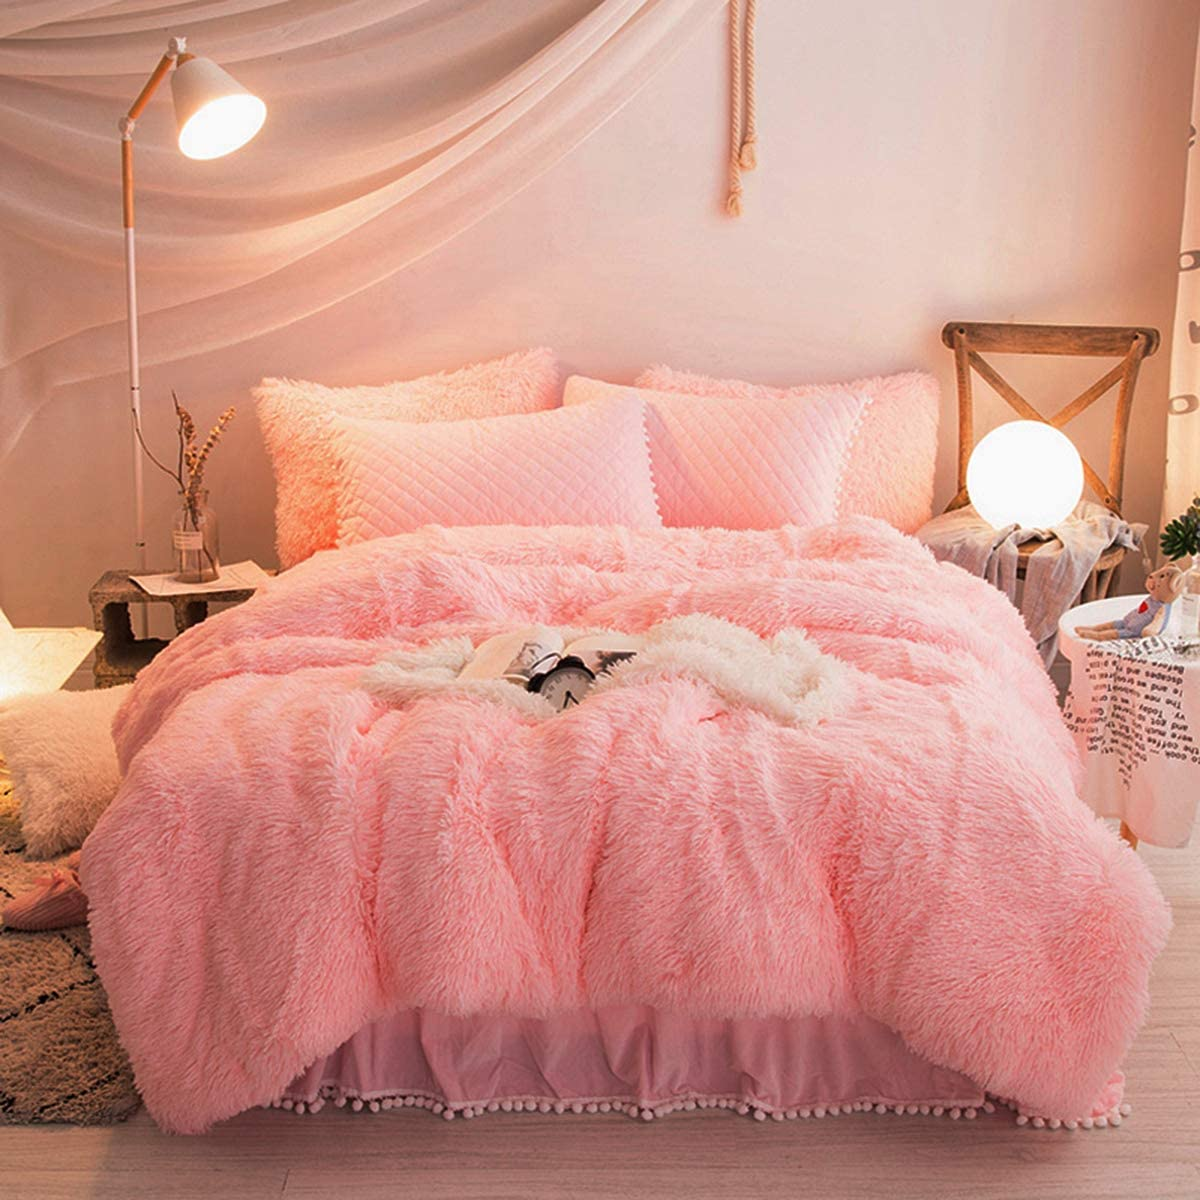 Vasofe Warm Shaggy Sherpa Blankets Fluffy Soft Fuzzy Faux Fur Throw Blanket for Xmas Couch Sofa Photo Home Decor Pink Bed Throw Size